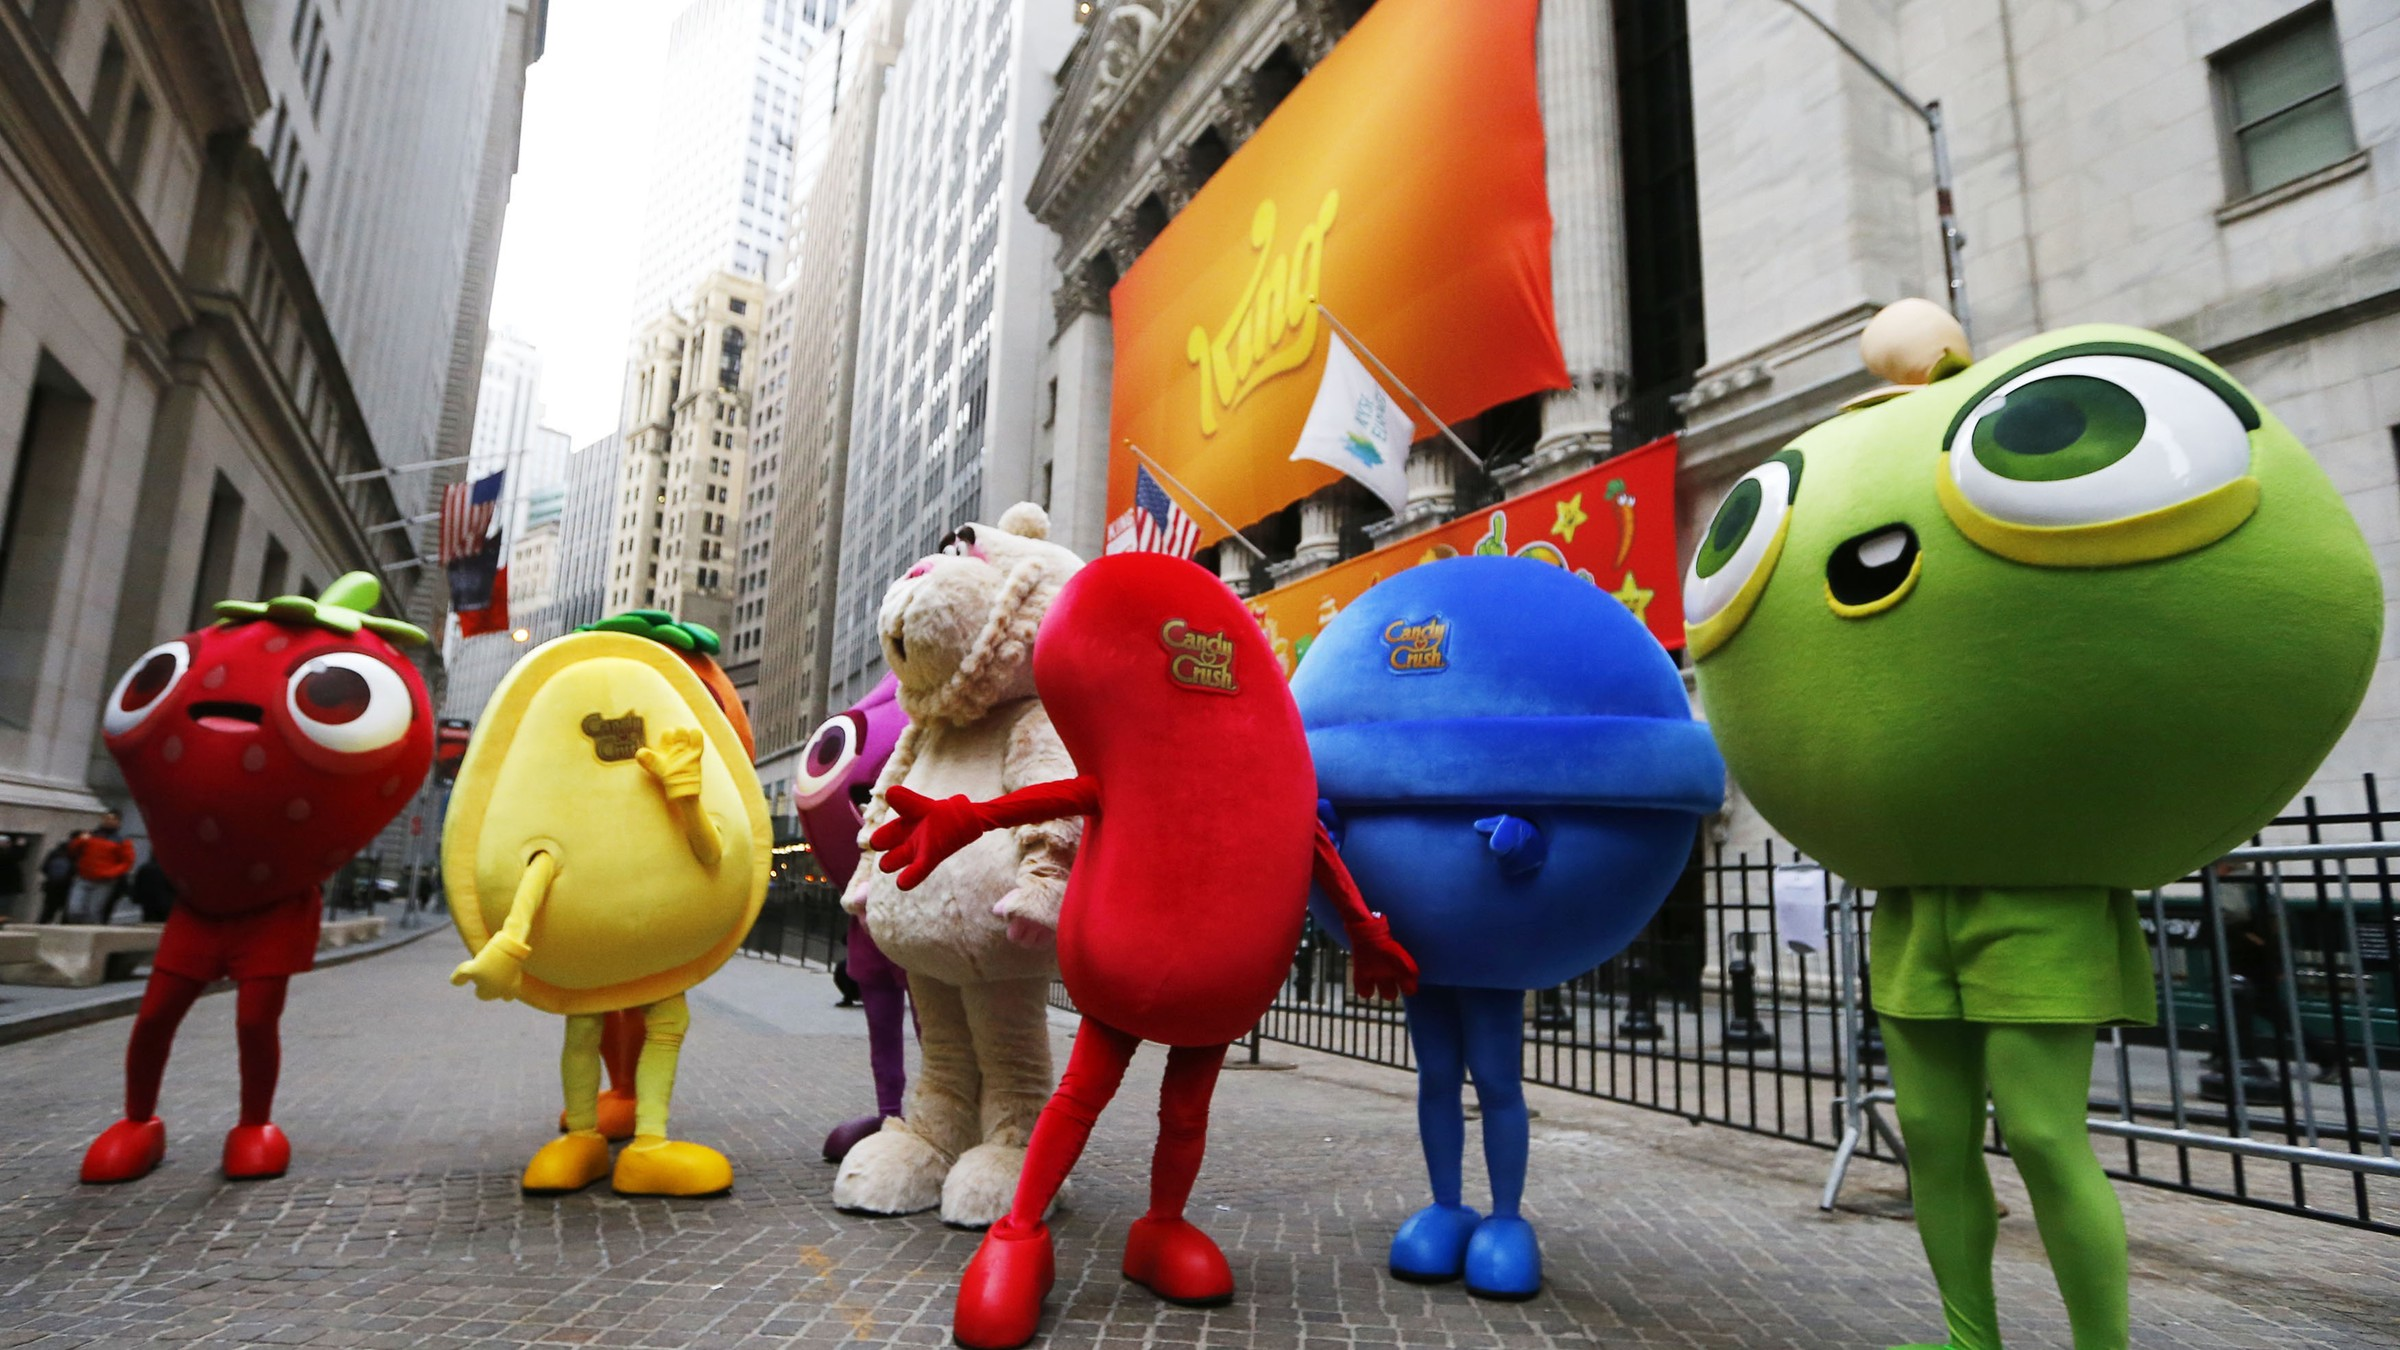 "Mascots dressed as characters from the mobile video game ""Candy Crush Saga"" pose outside the New York Stock Exchange ahead of the IPO of Mobile game maker King Digital Entertainment Plc March 26, 2014. REUTERS/Brendan McDermid (UNITED STATES - Tags: BUSINESS SCIENCE TECHNOLOGY ENTERTAINMENT)"